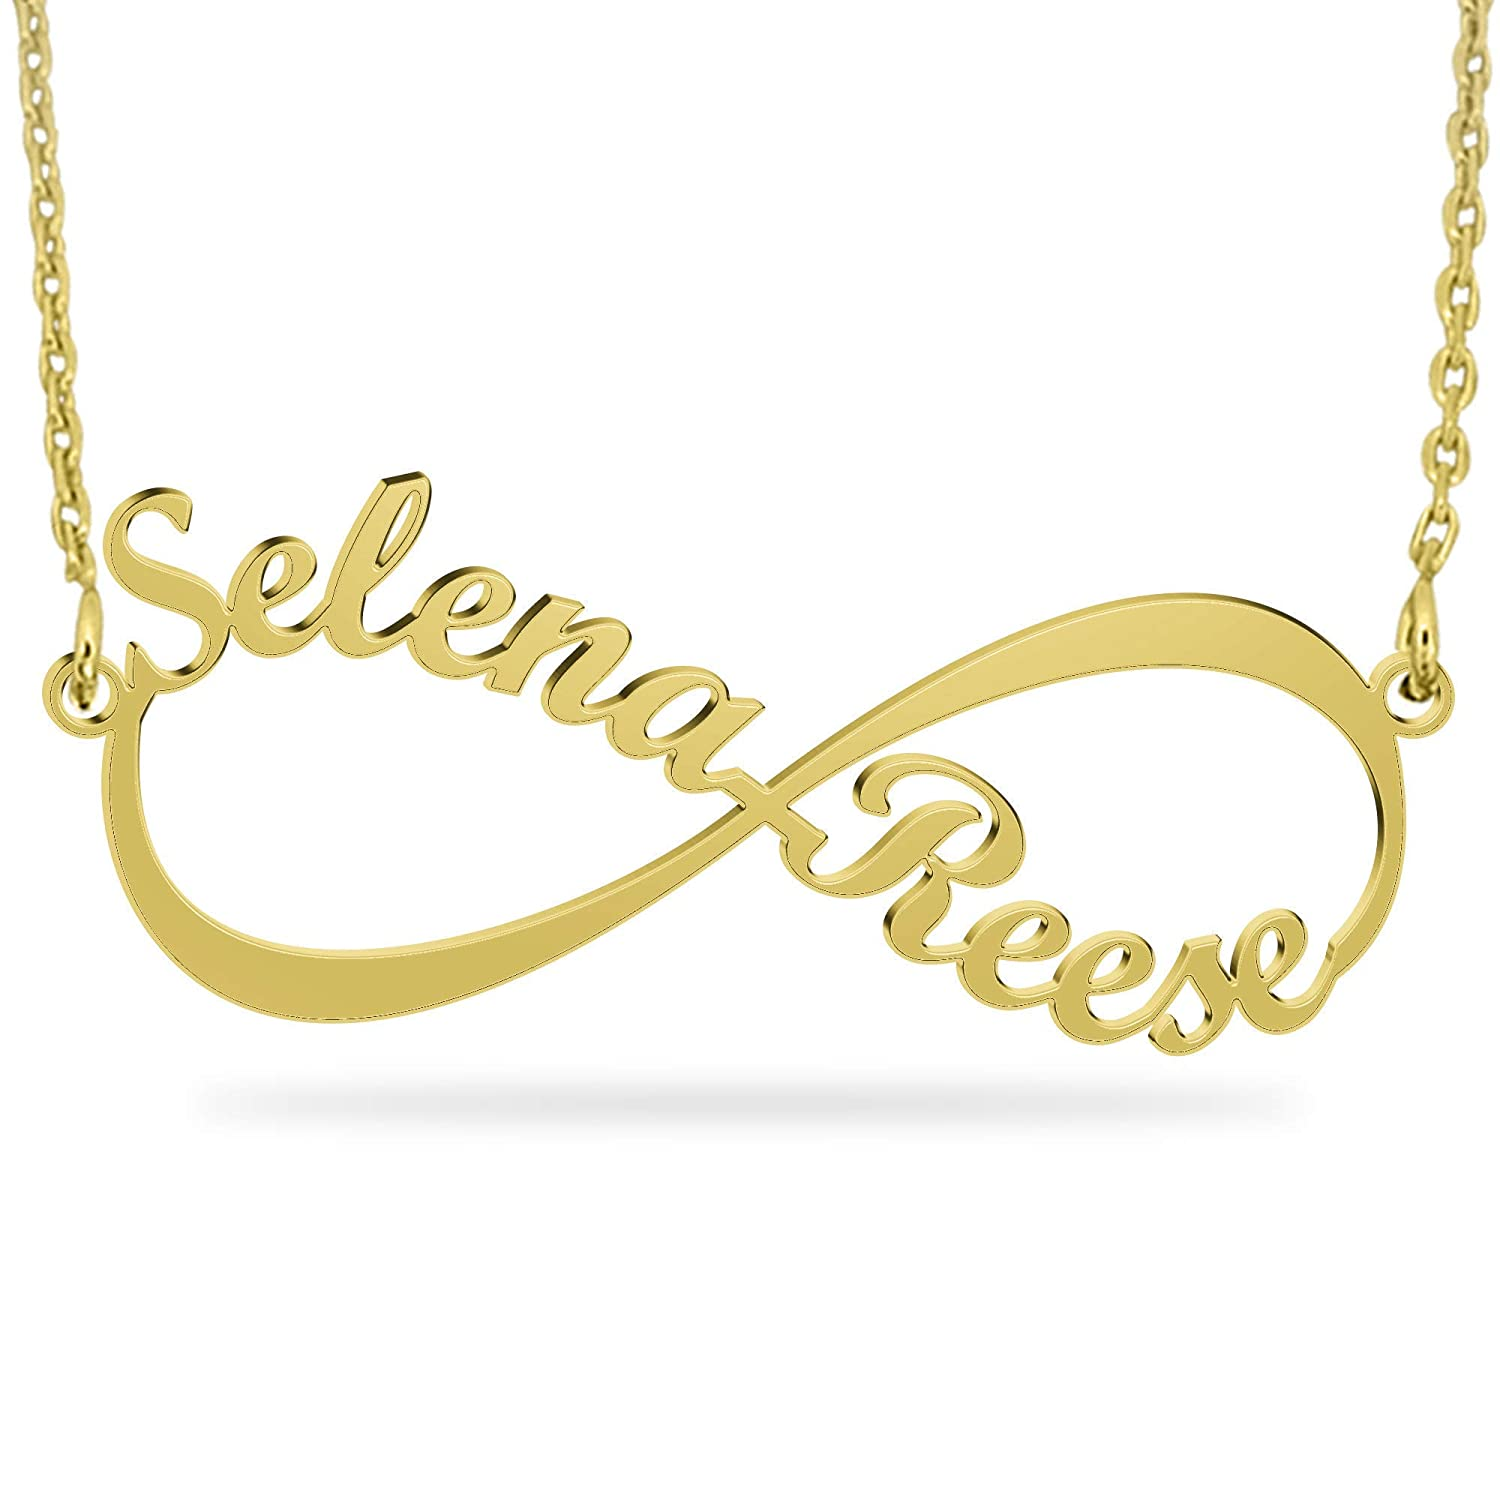 6e2b694d082a6 Infinity Pendant Name Necklace, Two Names Infinity Necklace - Custom Made  with Two Names For Couple